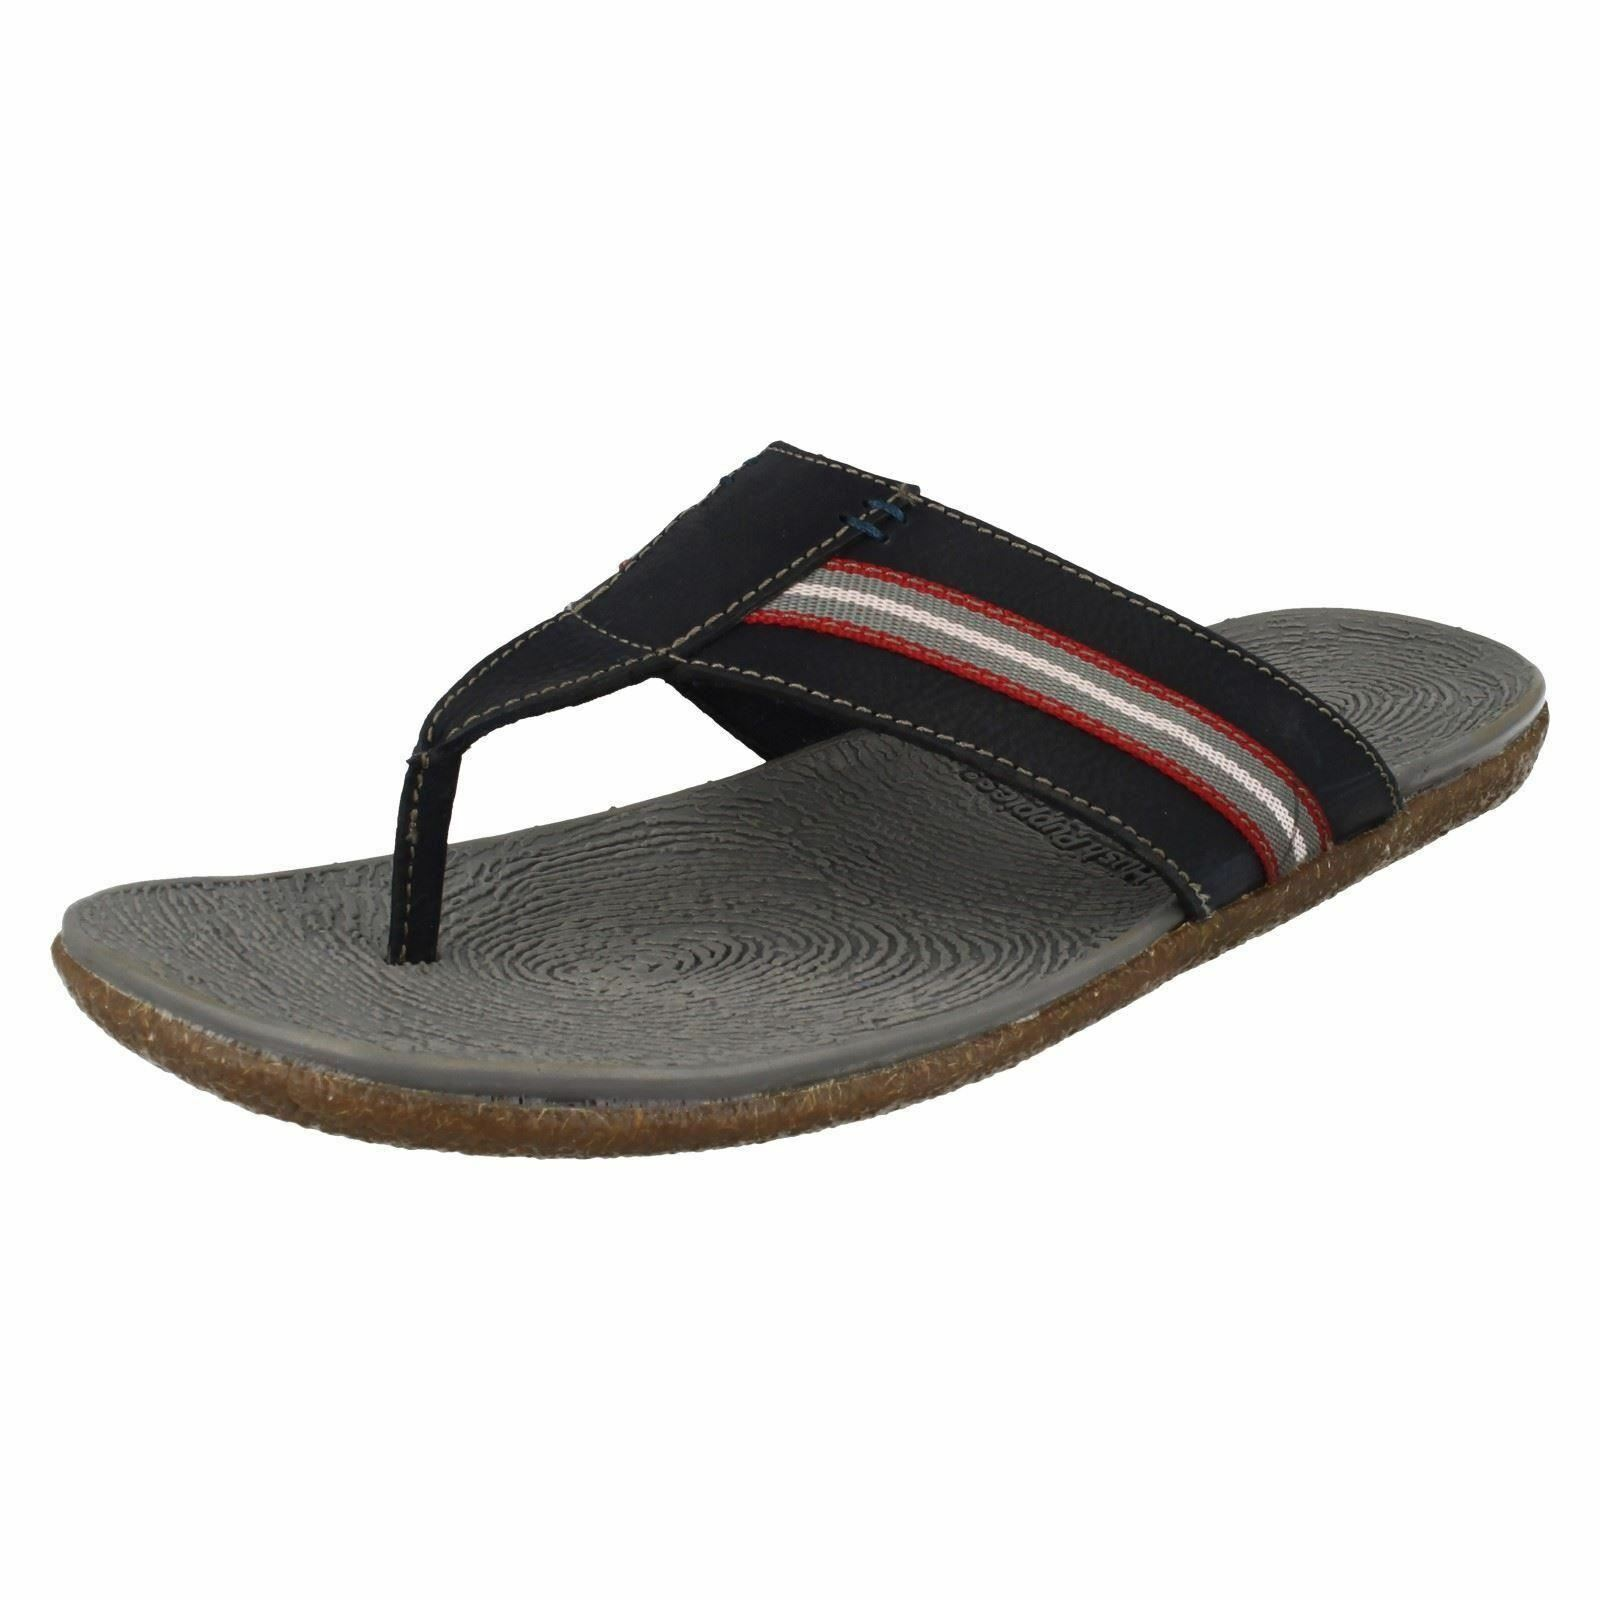 Mens Hush Puppies Frame Toe Post Navy Leather Casual Flip Flop Sandals